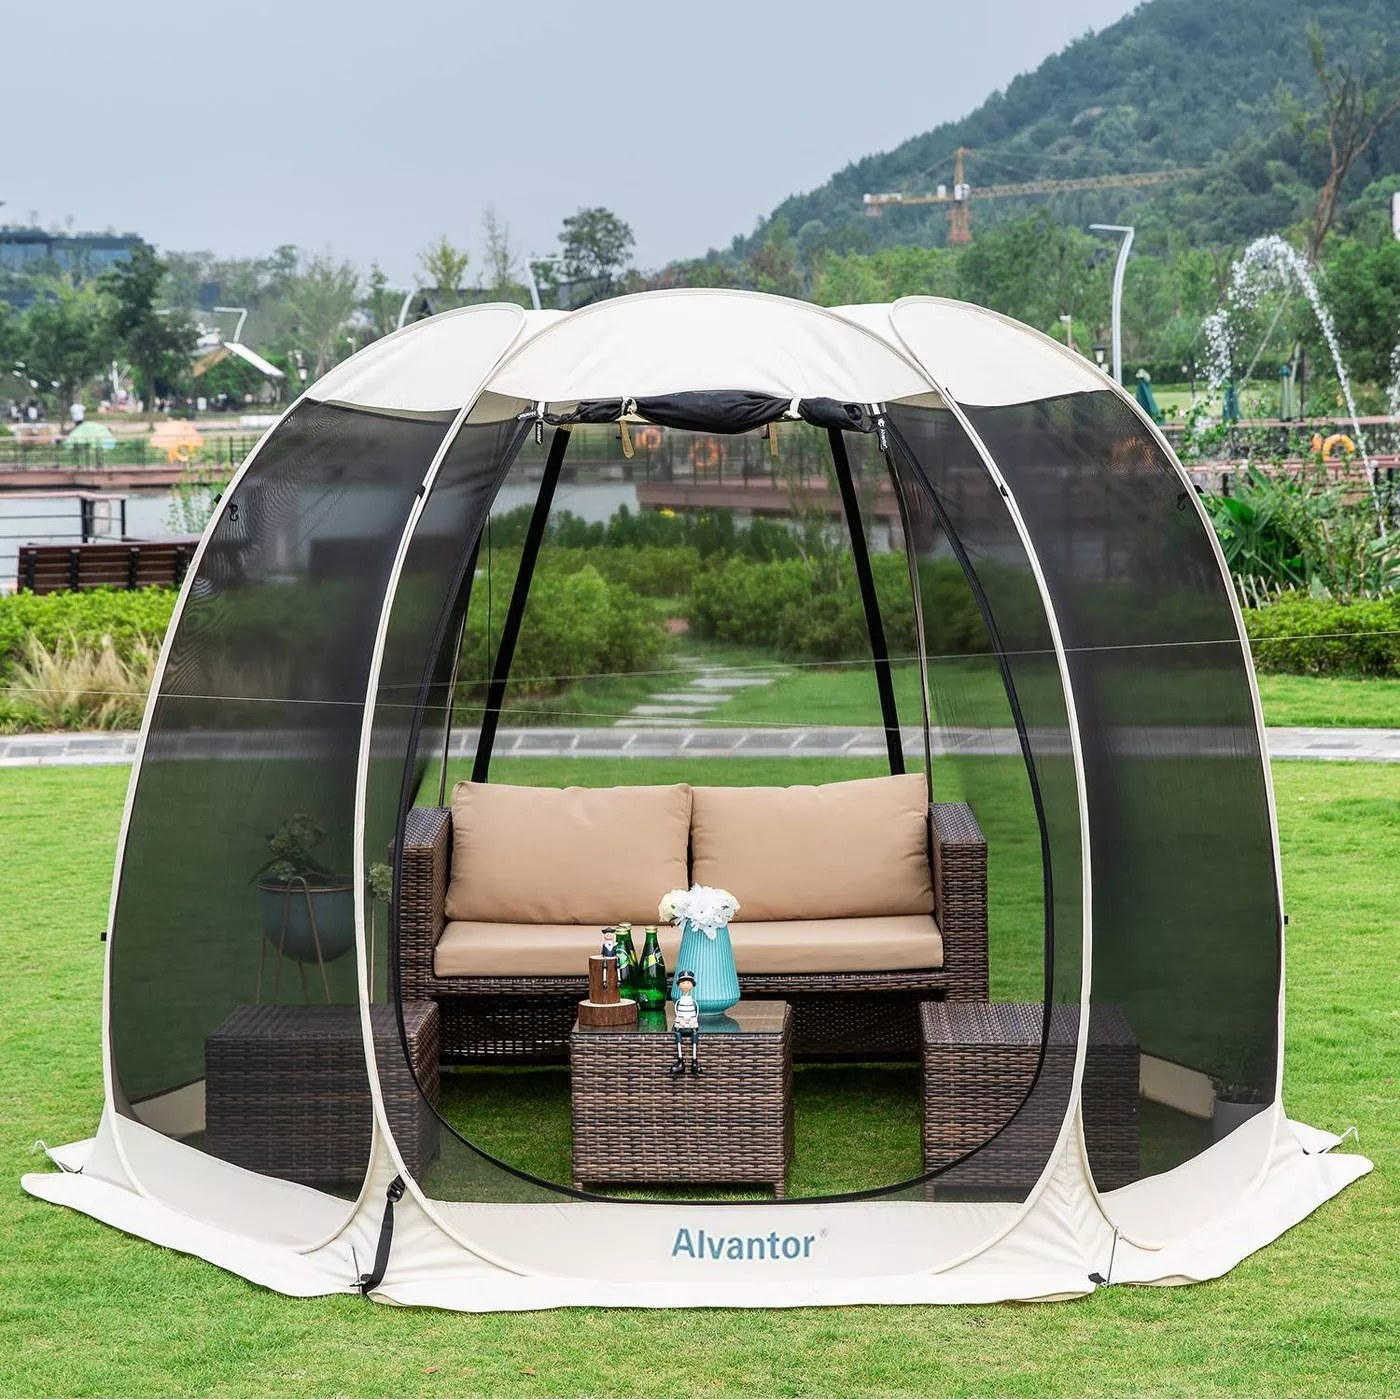 """The pop-up gazebo tent is outside and says """"Alvantor"""" and has porch furniture inside"""